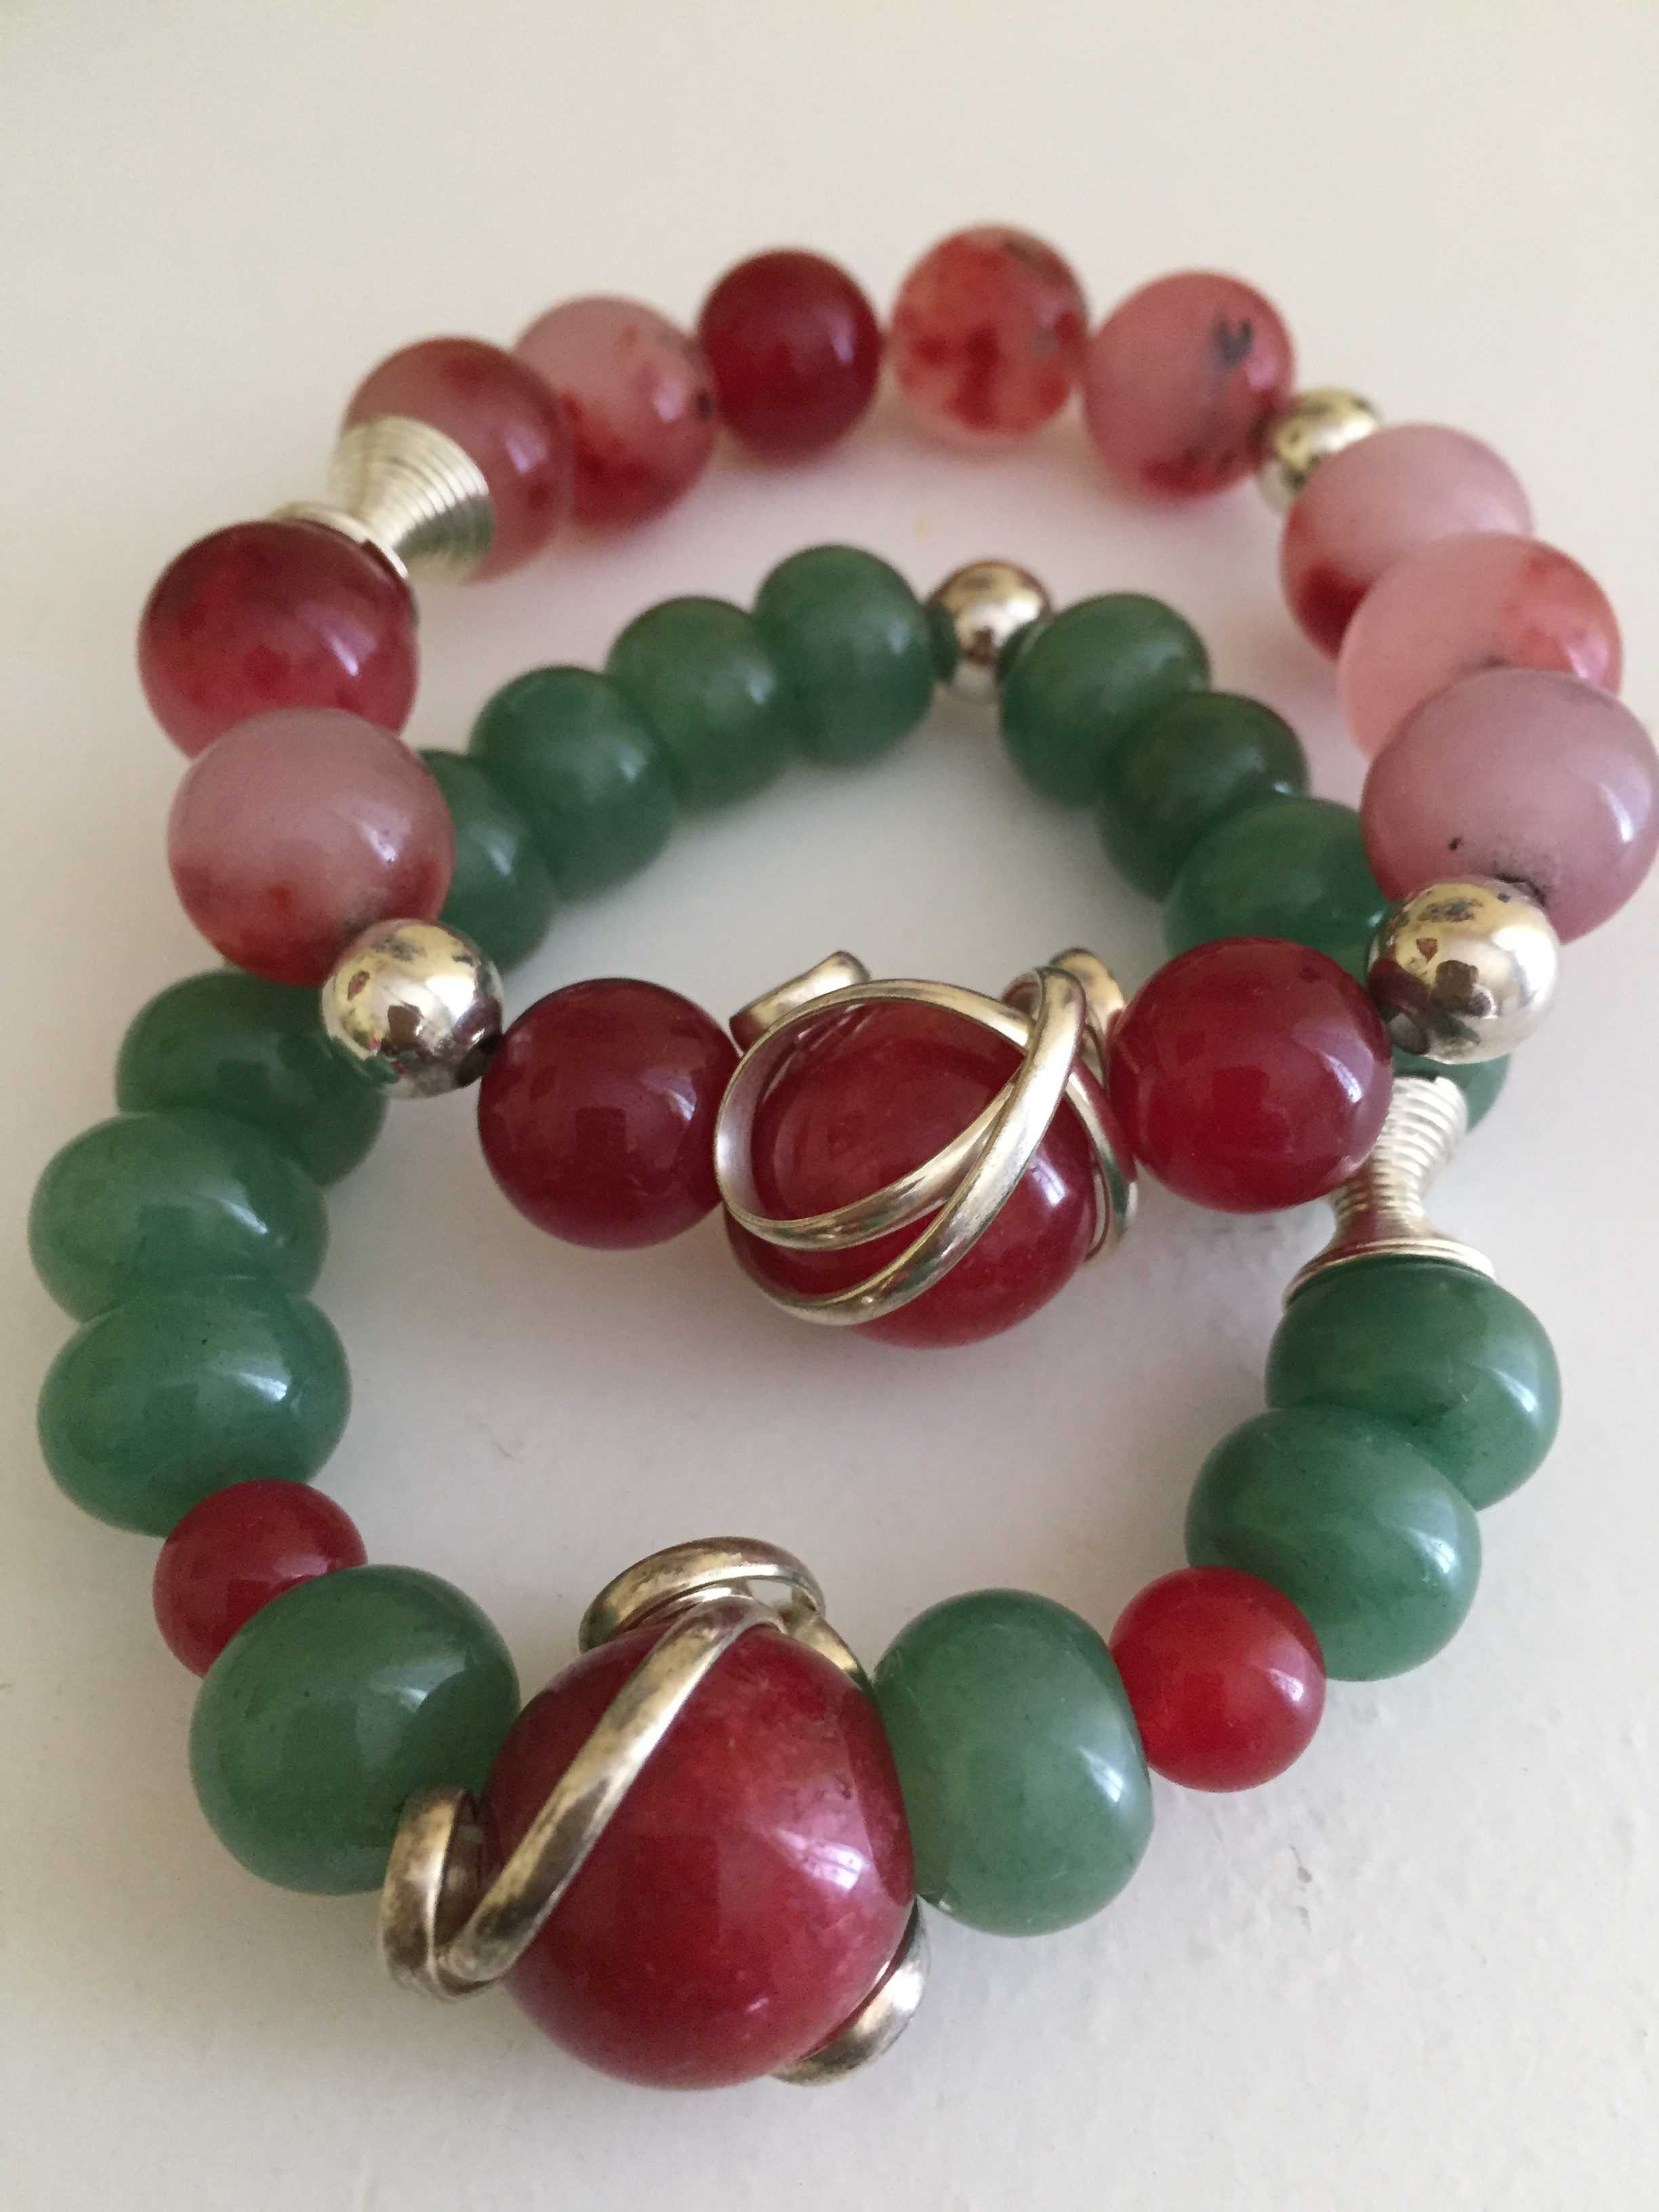 by beads jewelry jan photography christine sun etsy jade olive kazuri smith necklace luxury artisan